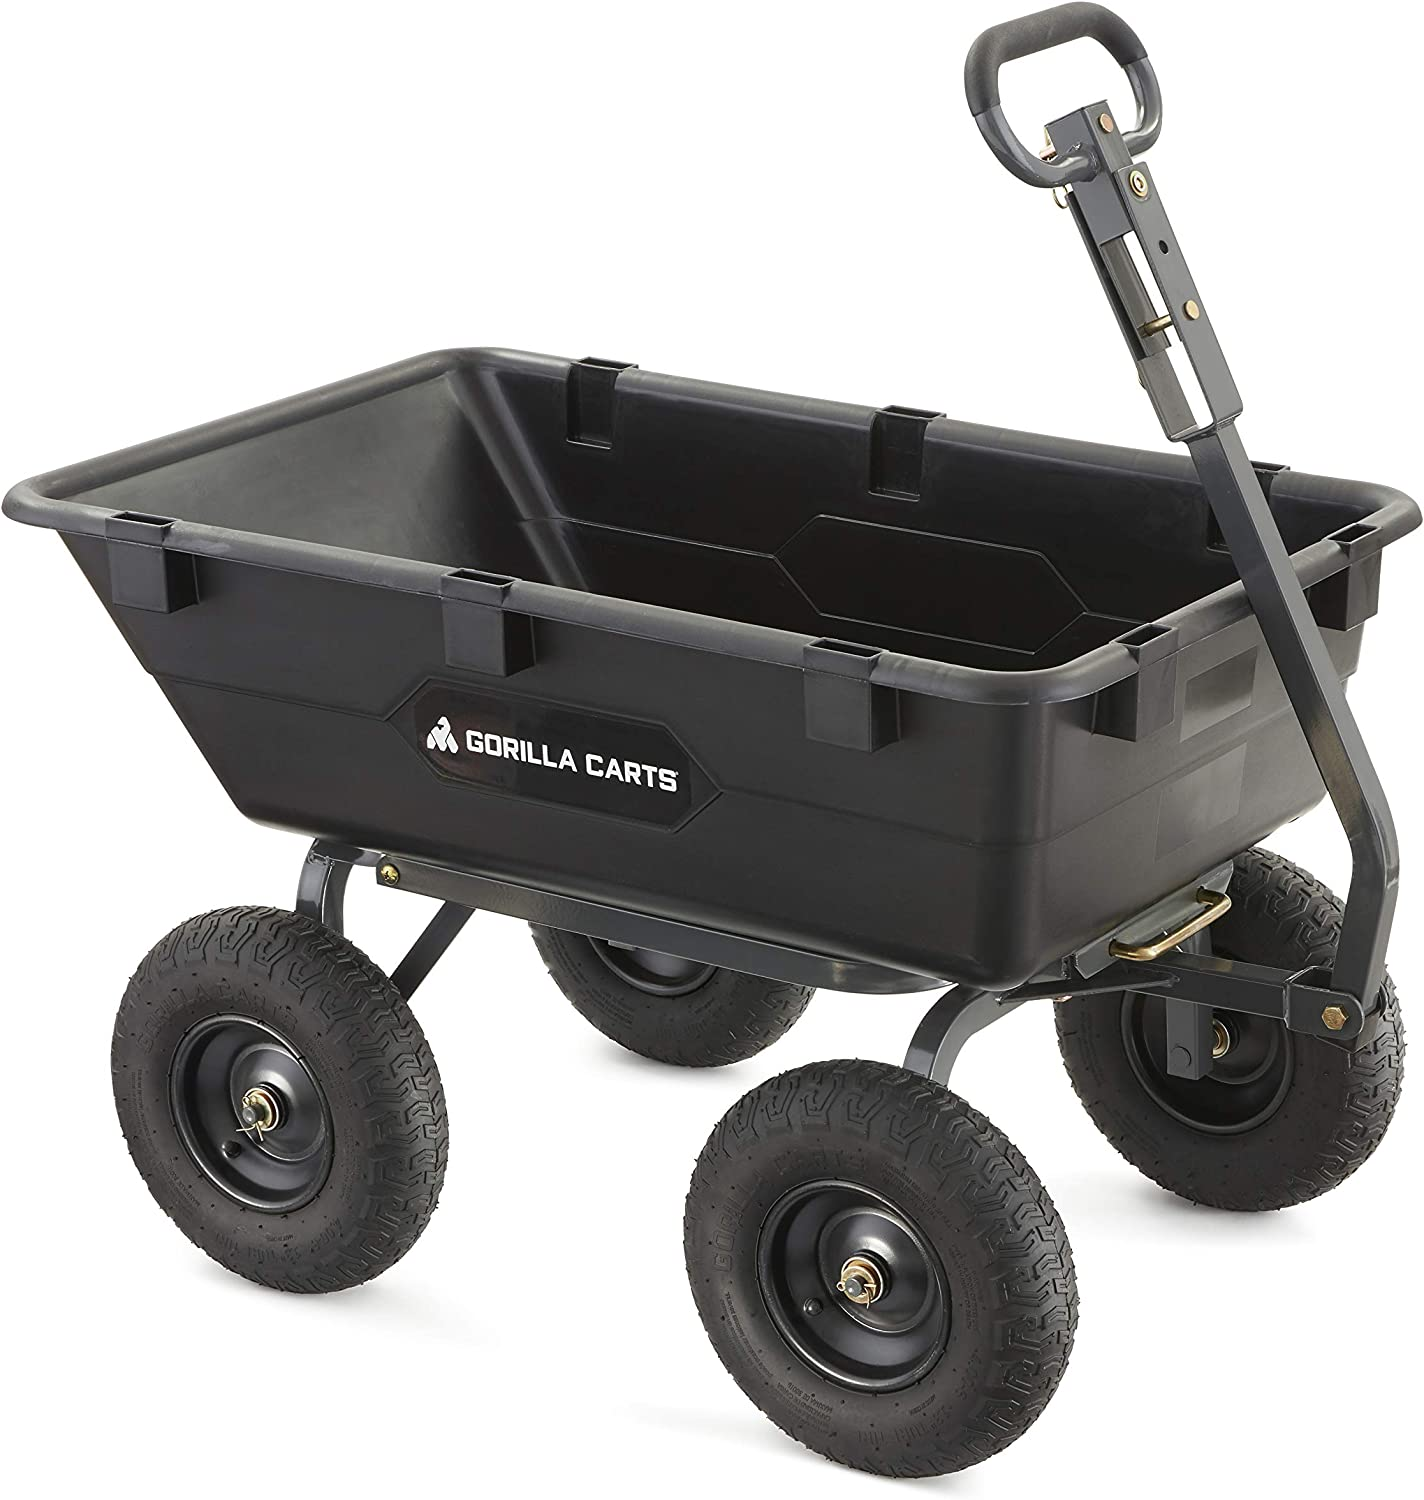 Best dump cart for lawn tractor: Gorilla Carts GOR6PS